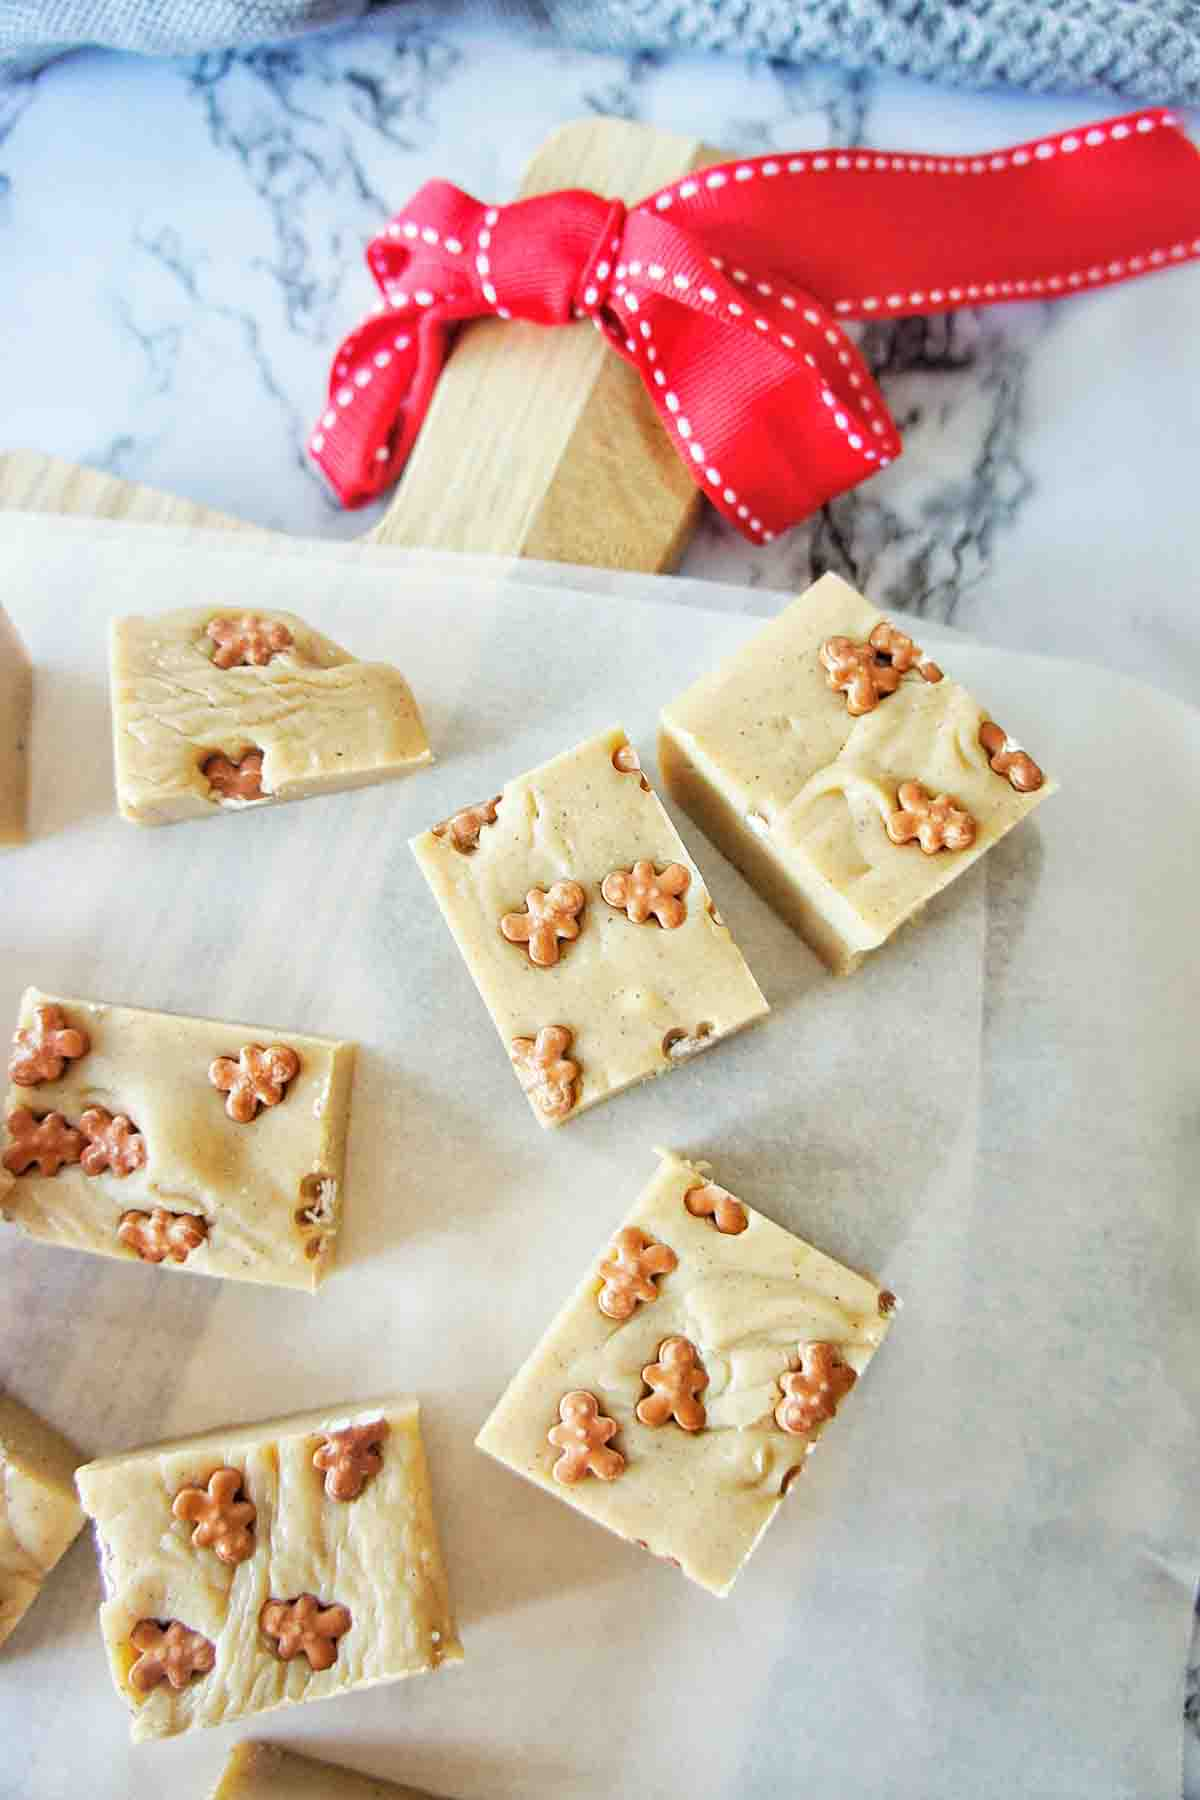 Gingerbread fudge cut into pieces on chopping board with baking paper